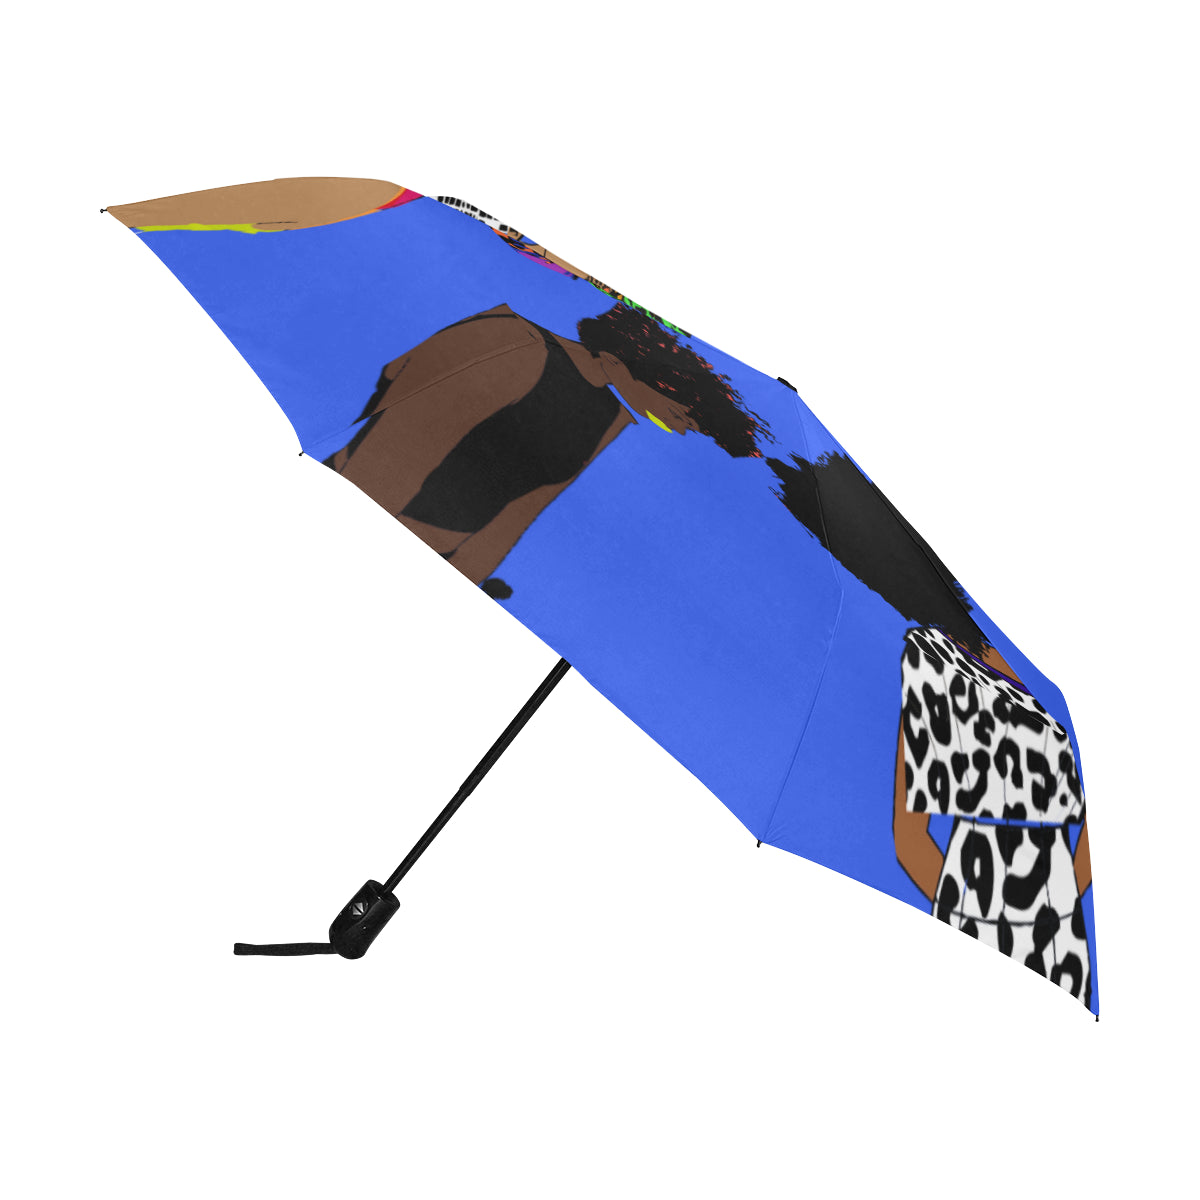 SQUAD ROYAL UMBRELLAS